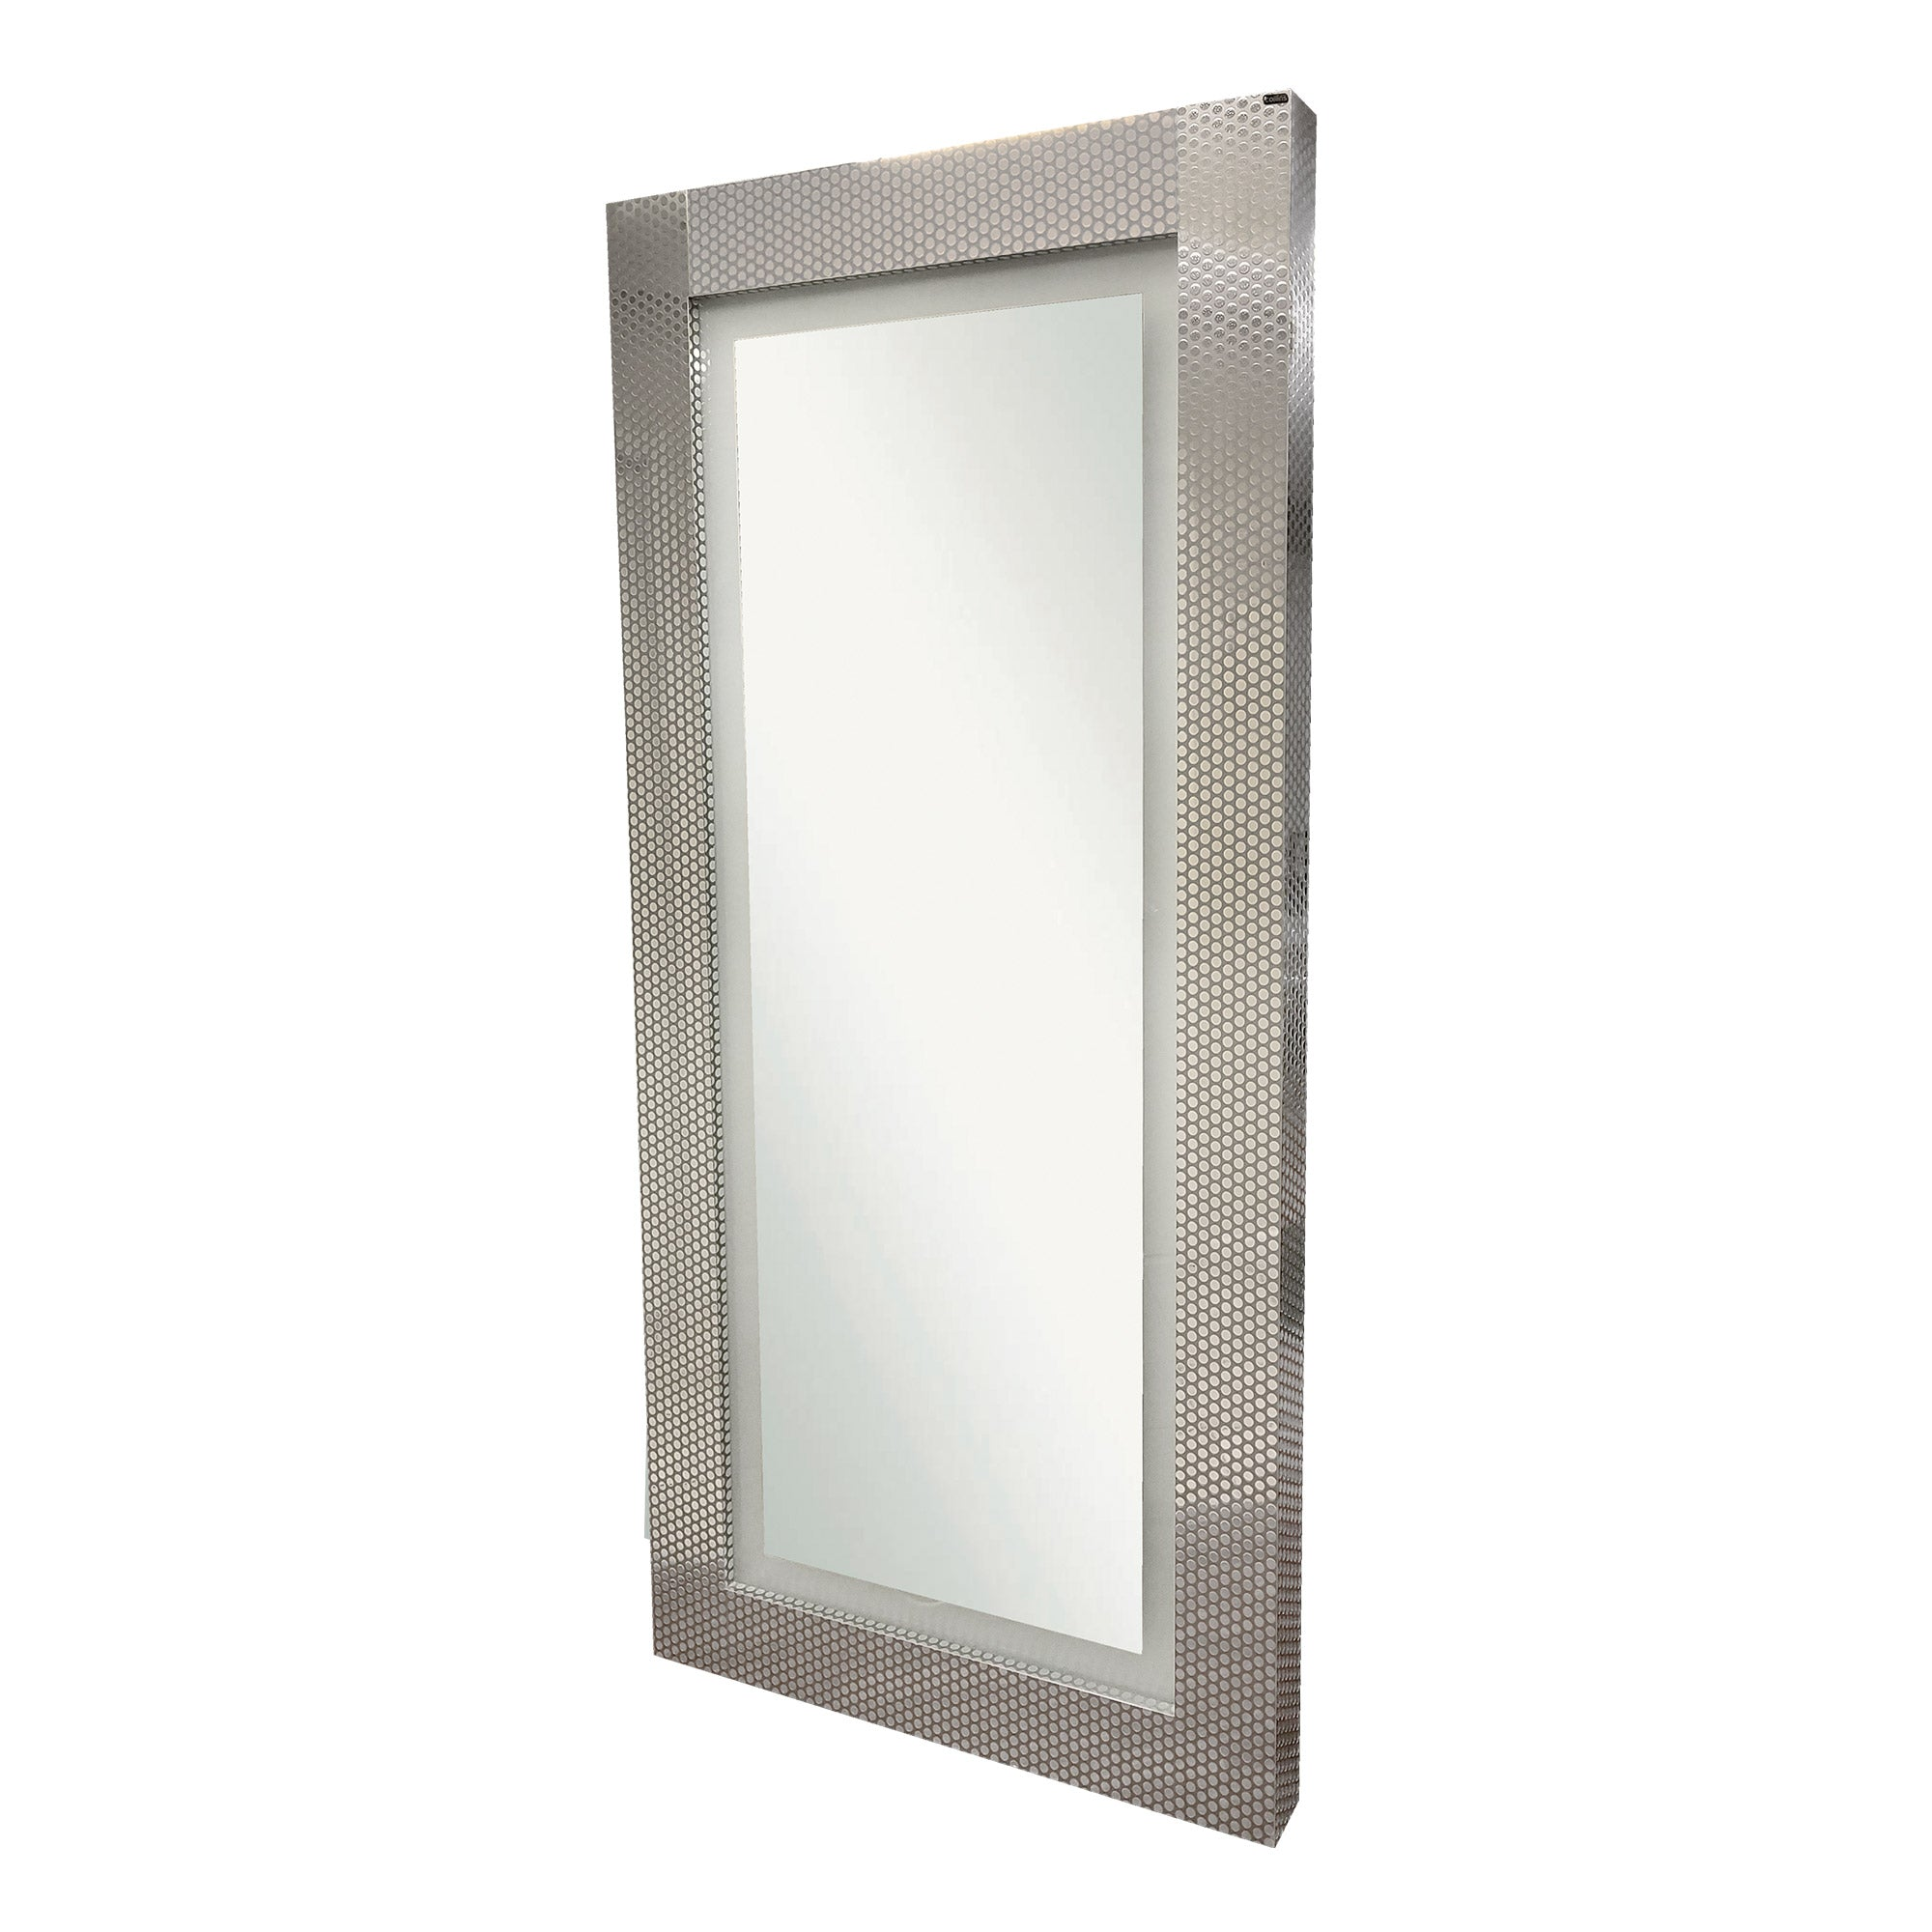 Zada XW LED-Lit Mirror